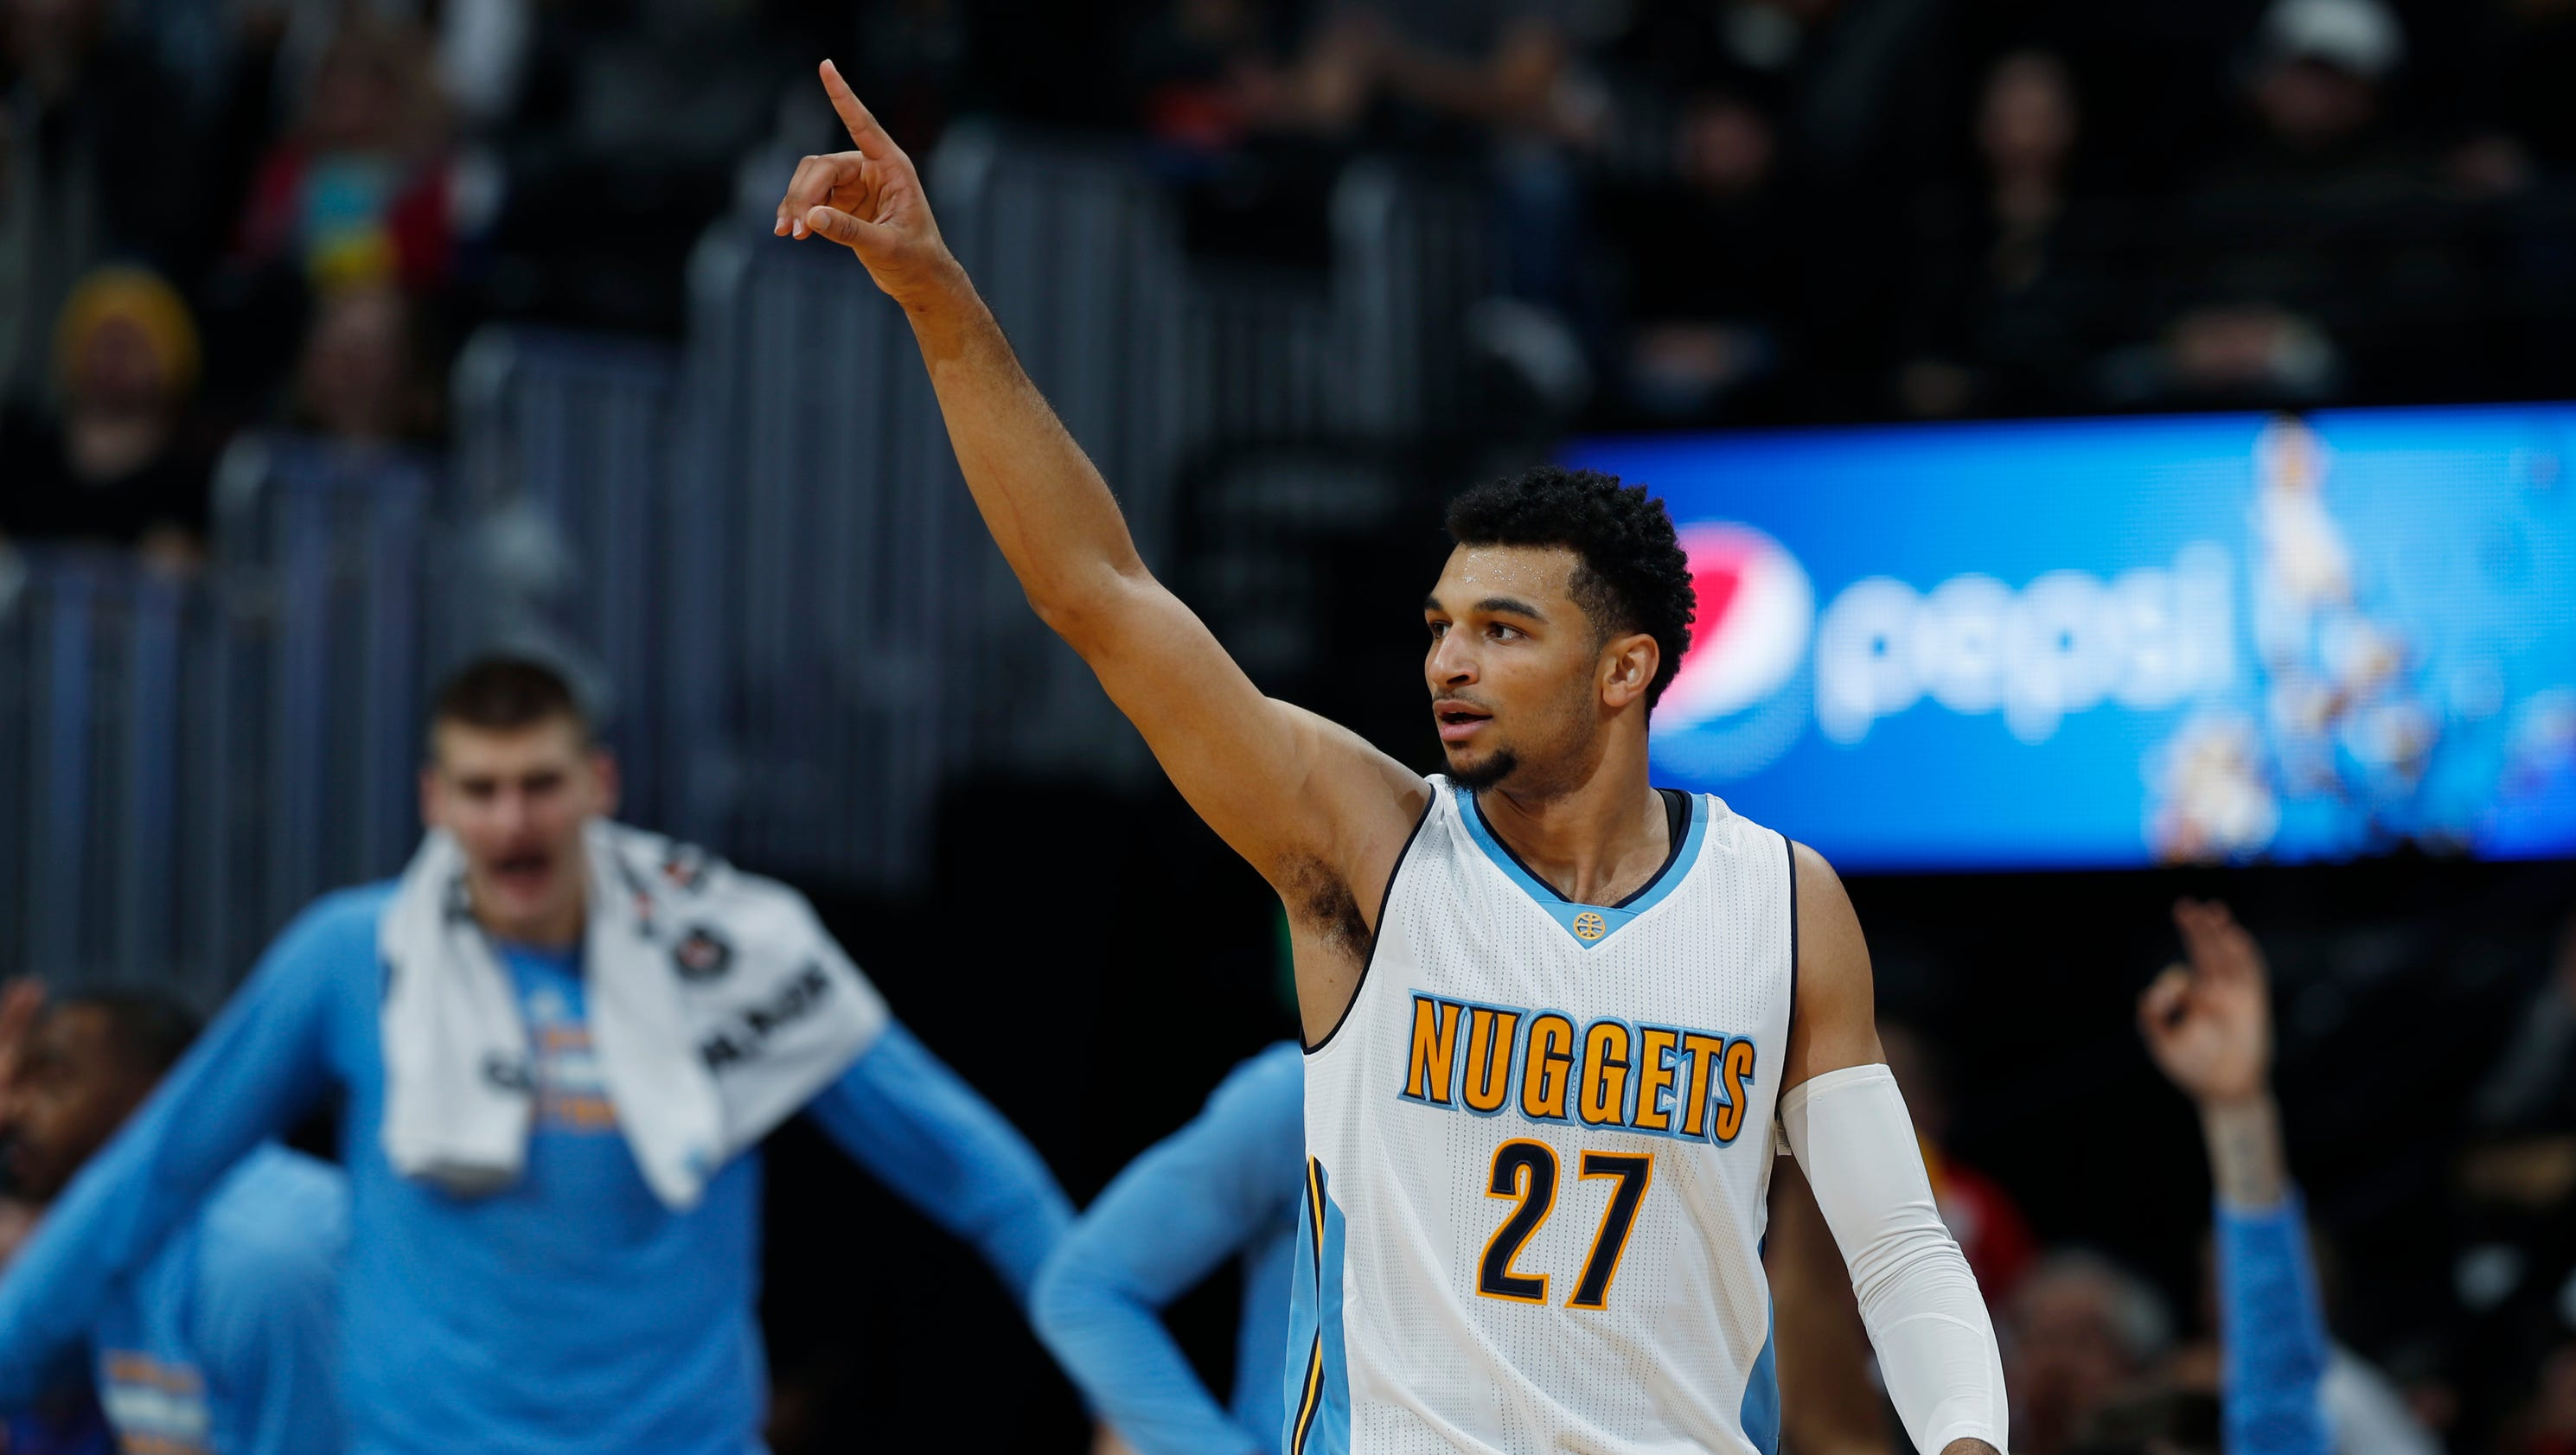 9ea977f9fbe1 ... Week 4 NBA Rookie of the Year race Jamal Murray climbing the Nuggets  announce ...